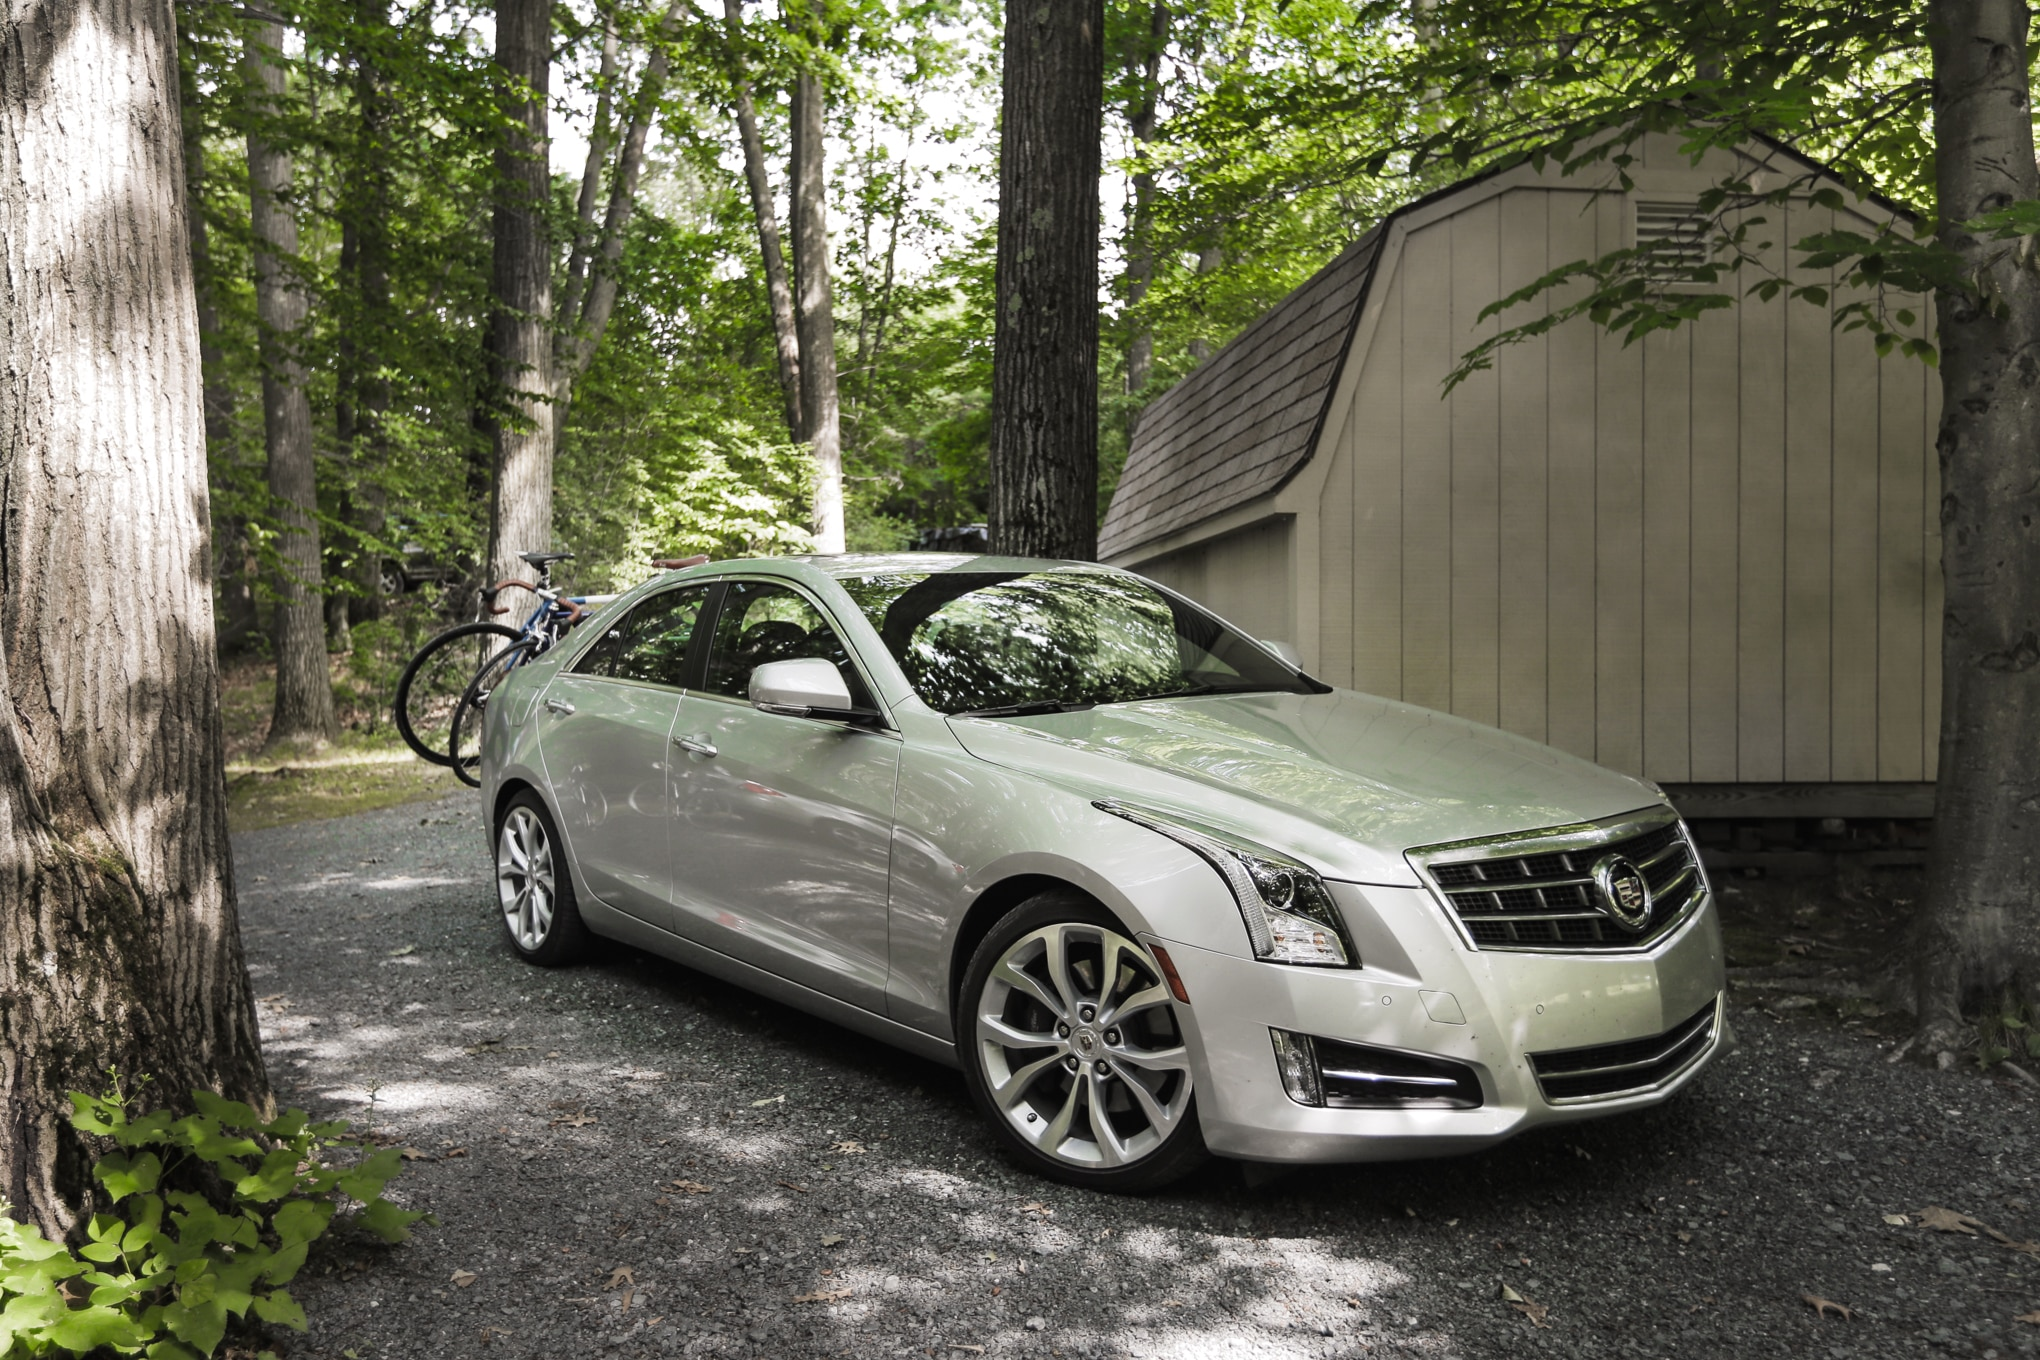 2013 cadillac ats four seasons update august 2013 automobile magazine. Black Bedroom Furniture Sets. Home Design Ideas